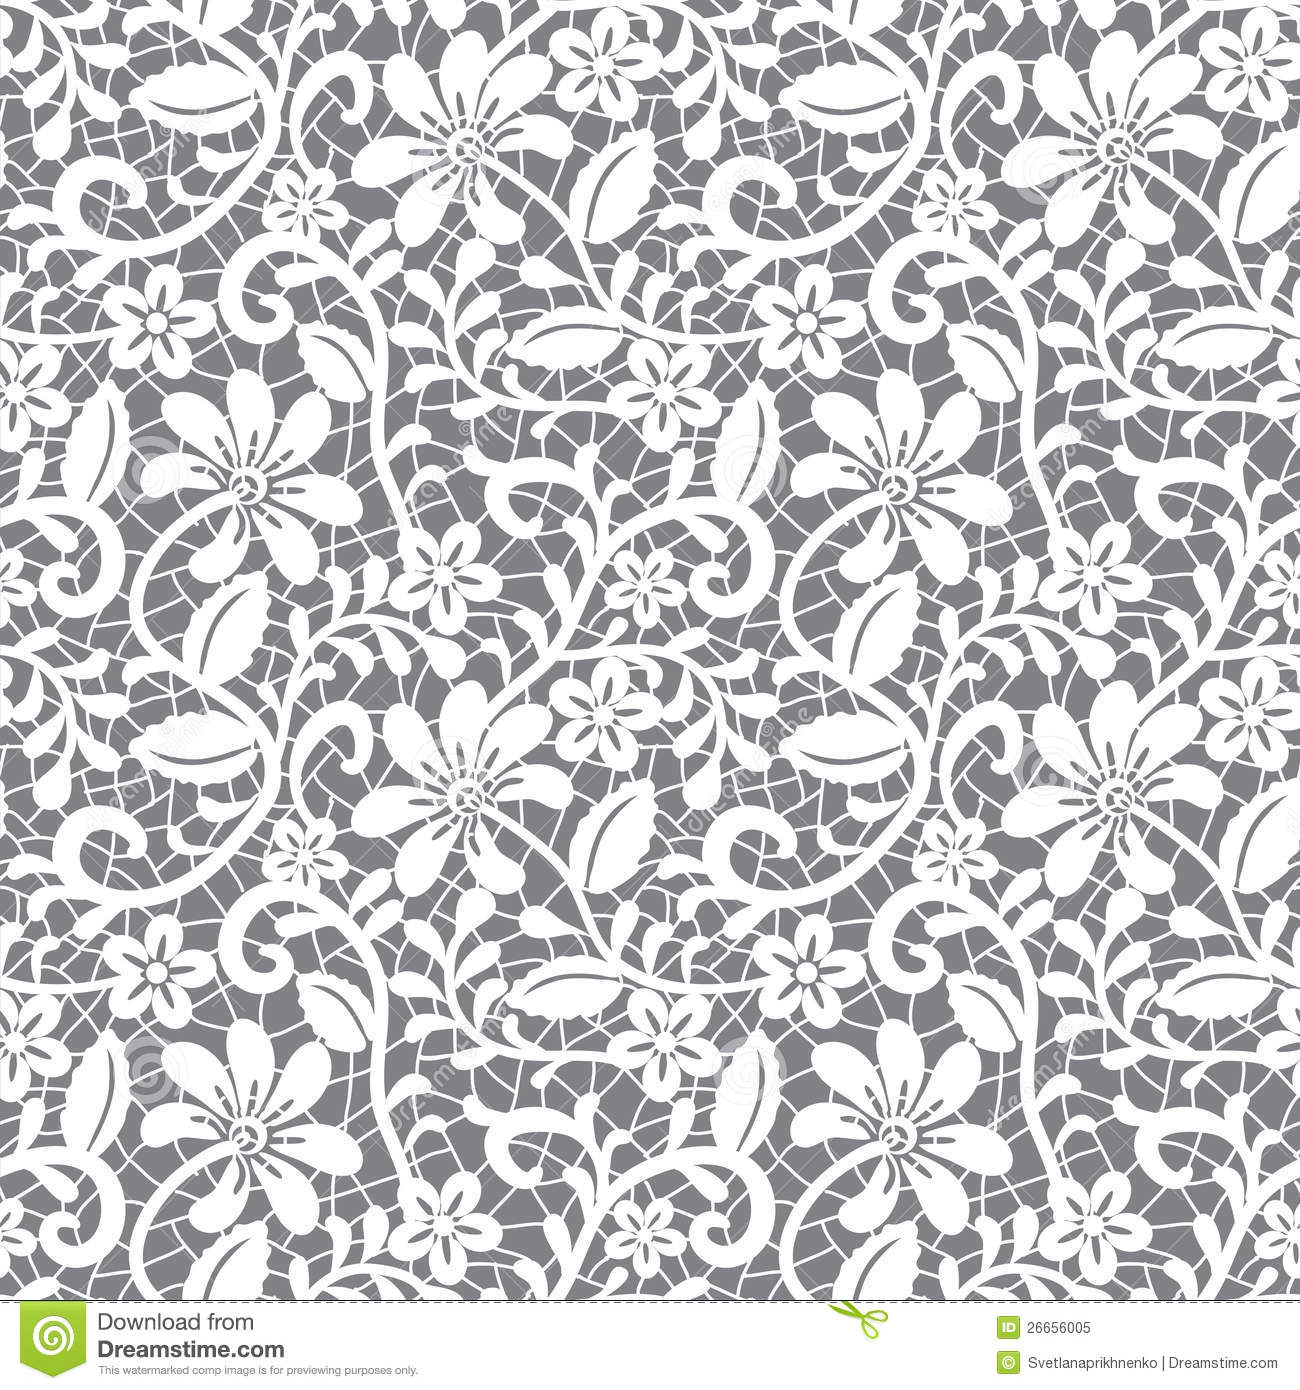 Clip art patterns graphic free stock Pattern clip art free - ClipartFest graphic free stock